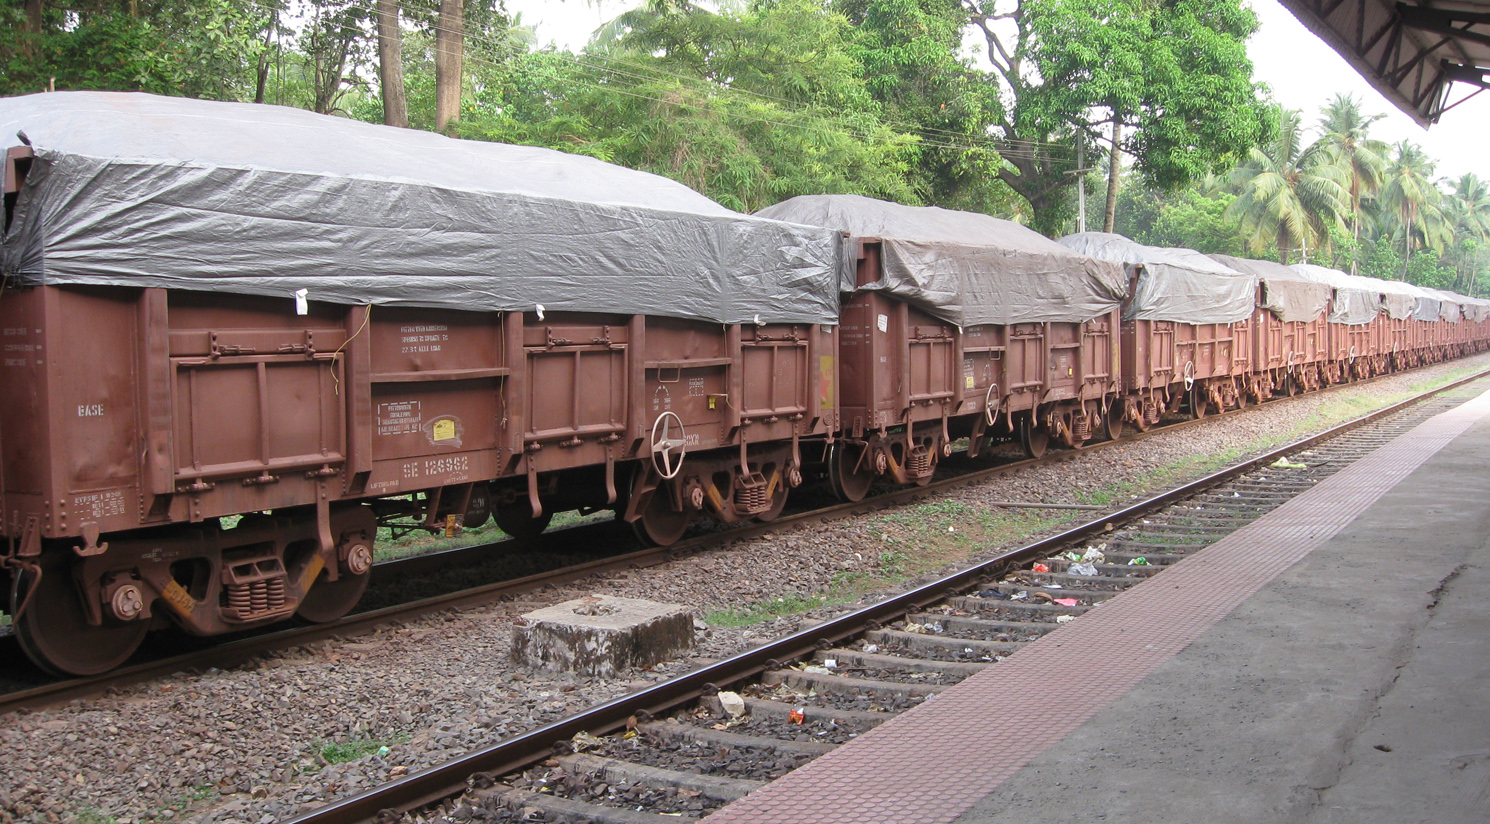 11-093_iron_ore_train_goa_2_1490x824.jpg